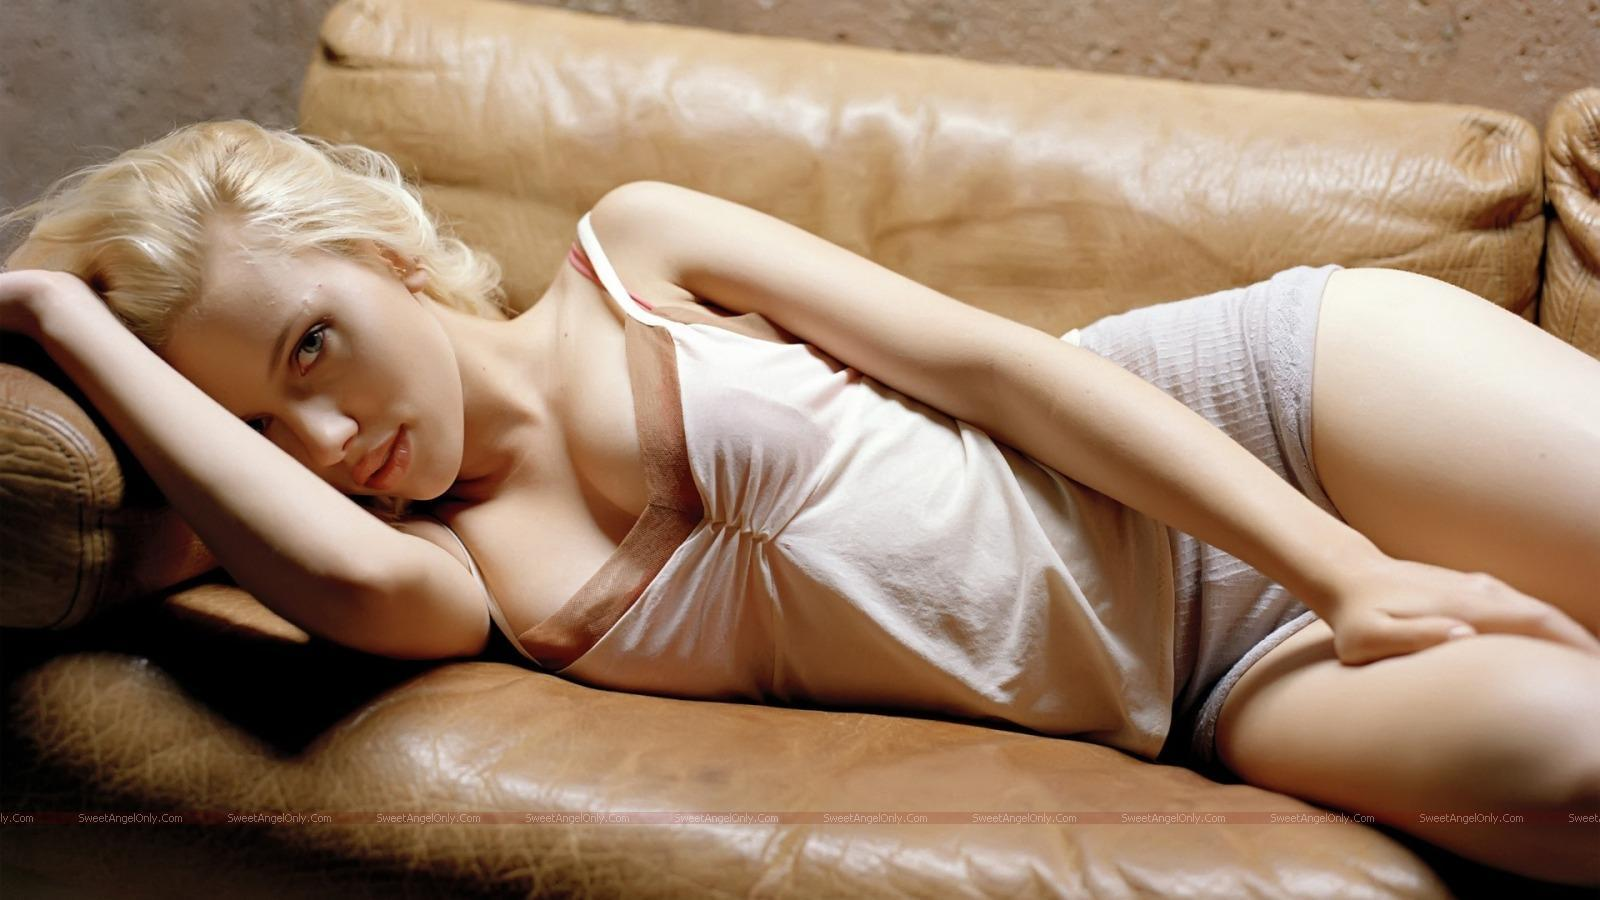 http://4.bp.blogspot.com/_jJPqWg6V3Y8/TUK7hzX0jwI/AAAAAAAAD_U/S6qtqtnwvpw/s1600/hollywood_hot_actress_wallpapers_79.jpg